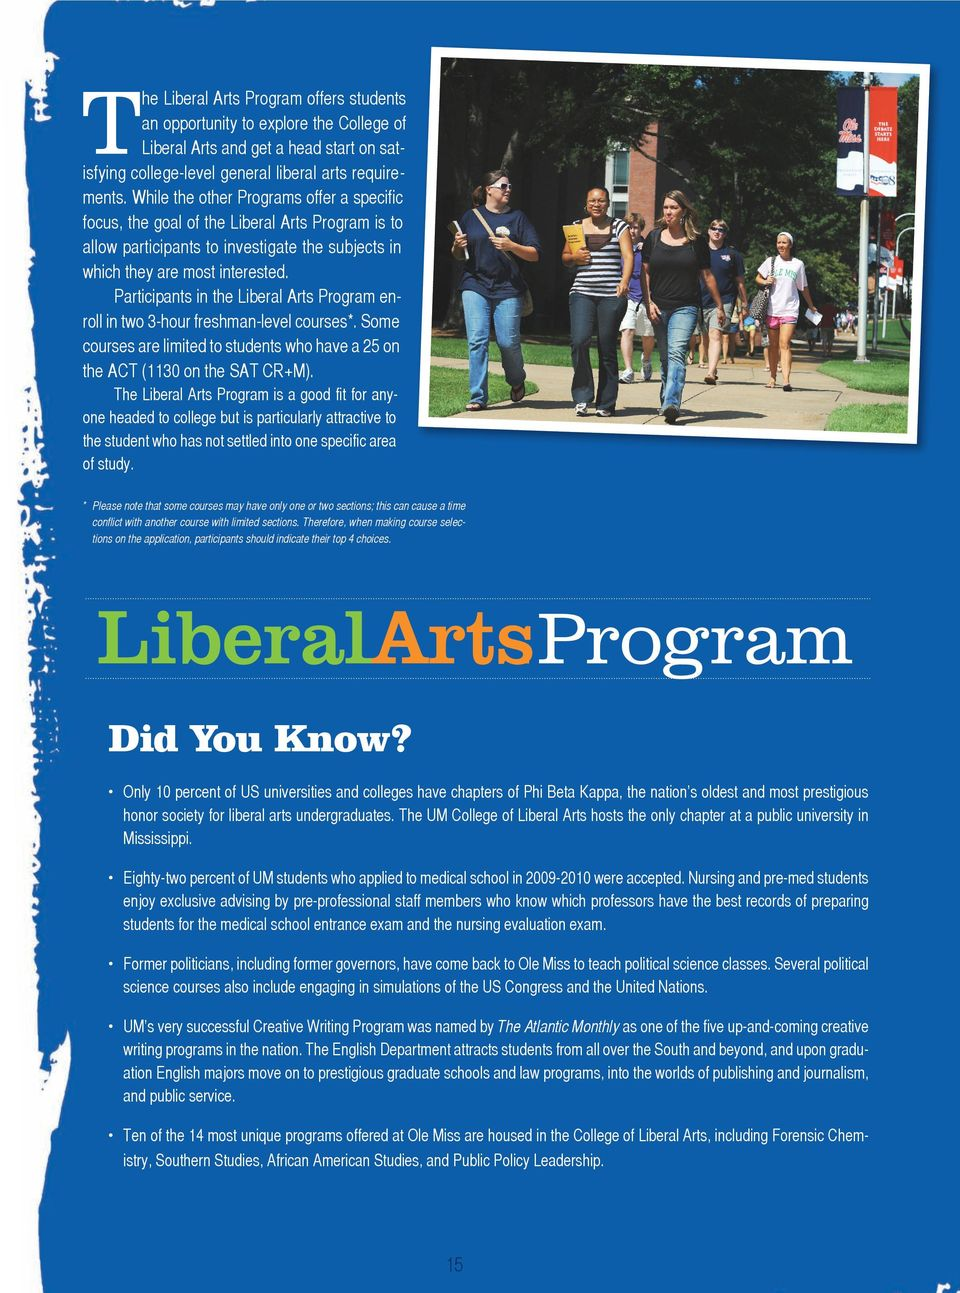 Participants in the Liberal Arts Program enroll in two 3-hour freshman-level courses*. Some courses are limited to students who have a 25 on the ACT (1130 on the SAT CR+M).